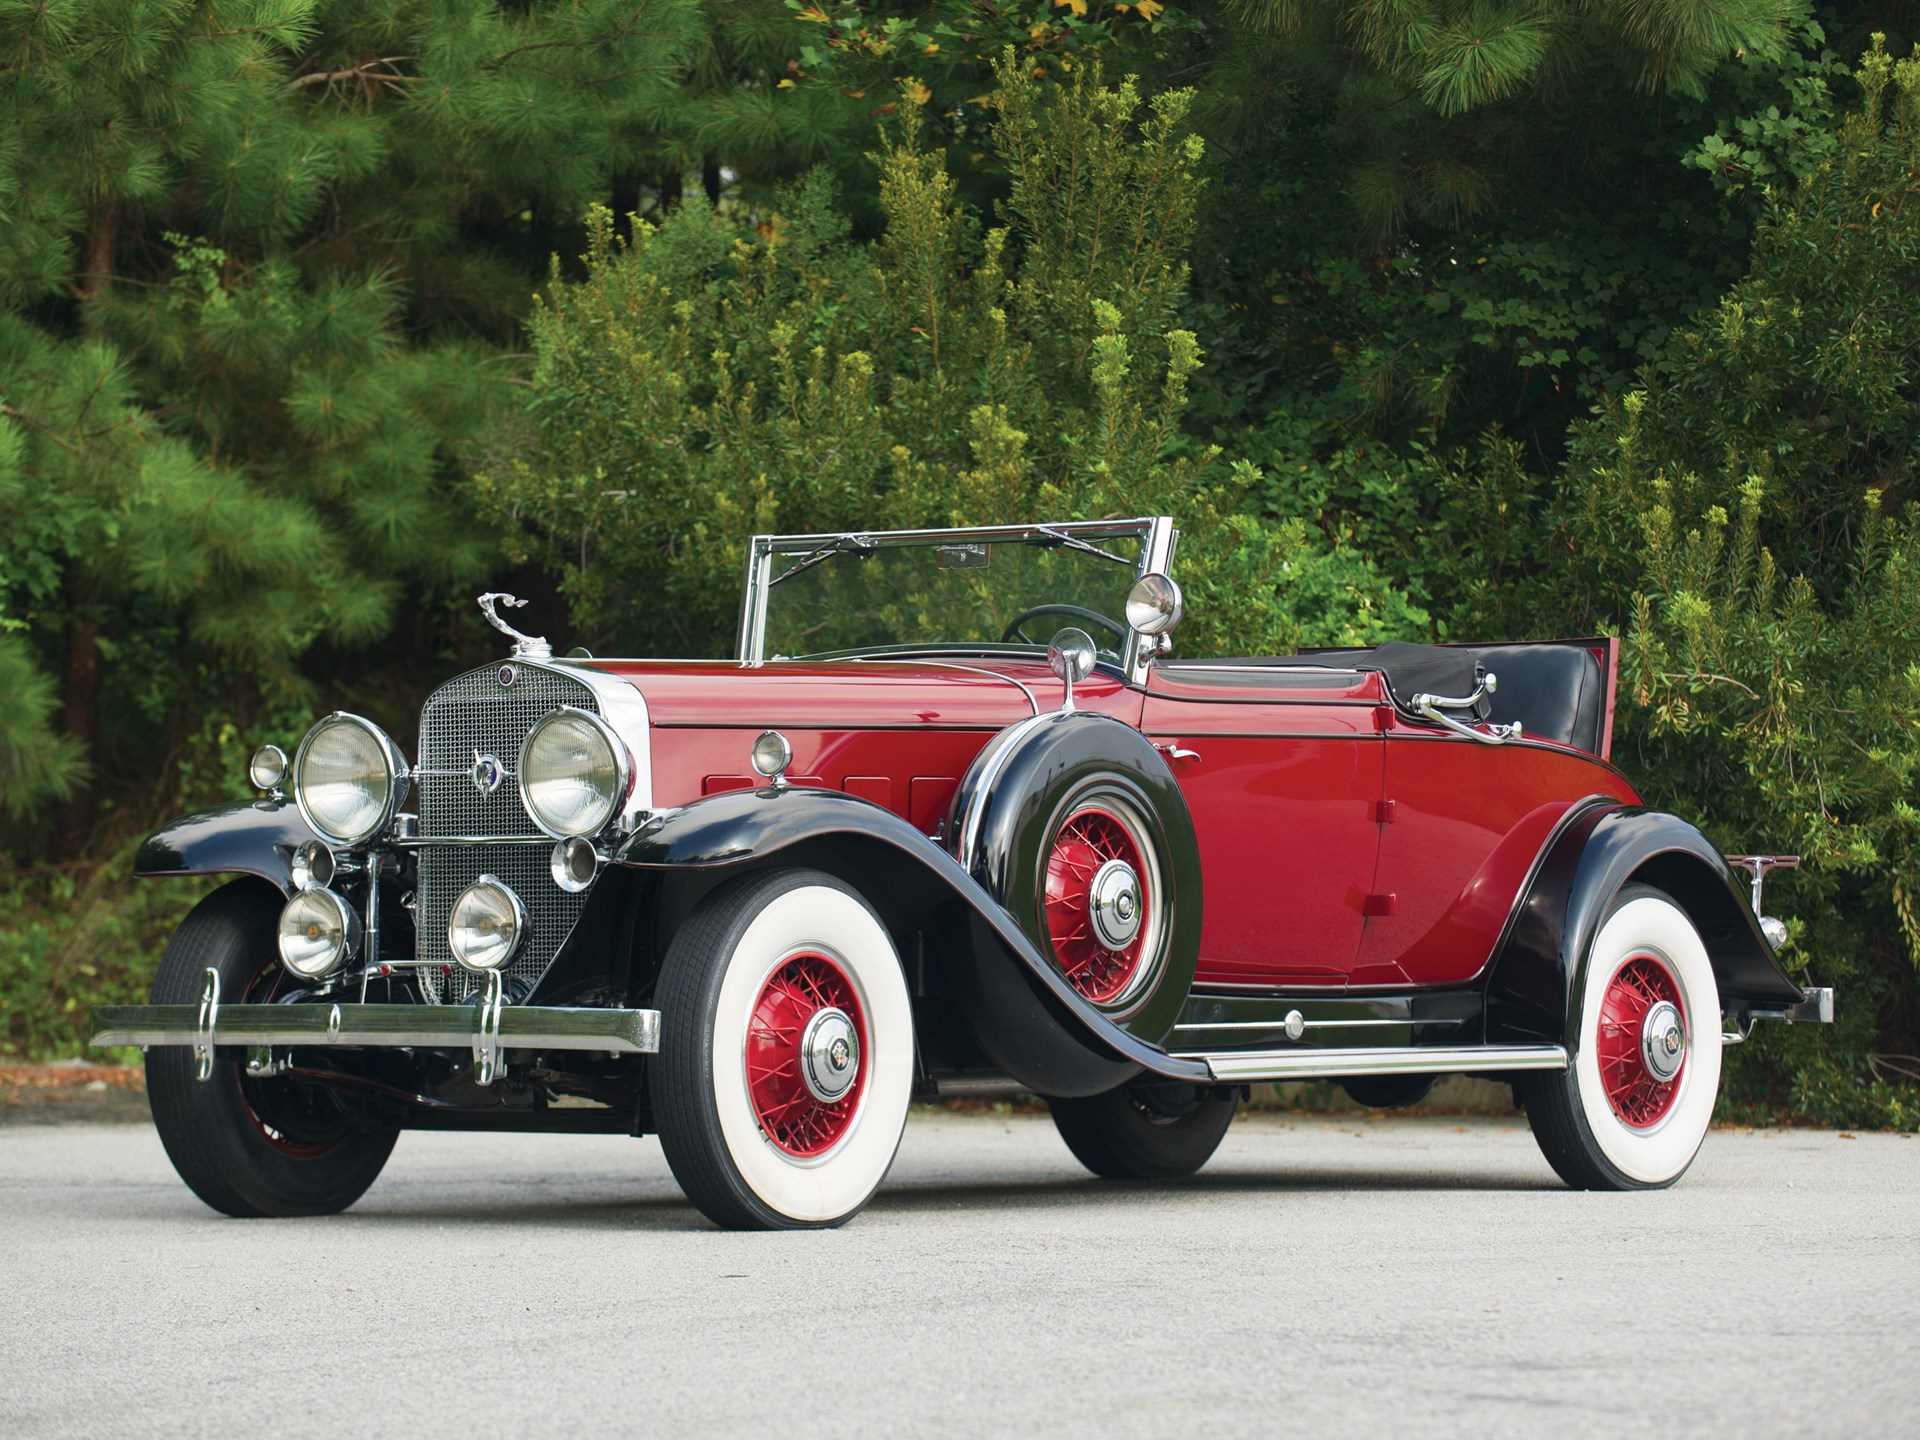 1931 Cadillac V 12 Convertible Coupe By Fleetwood